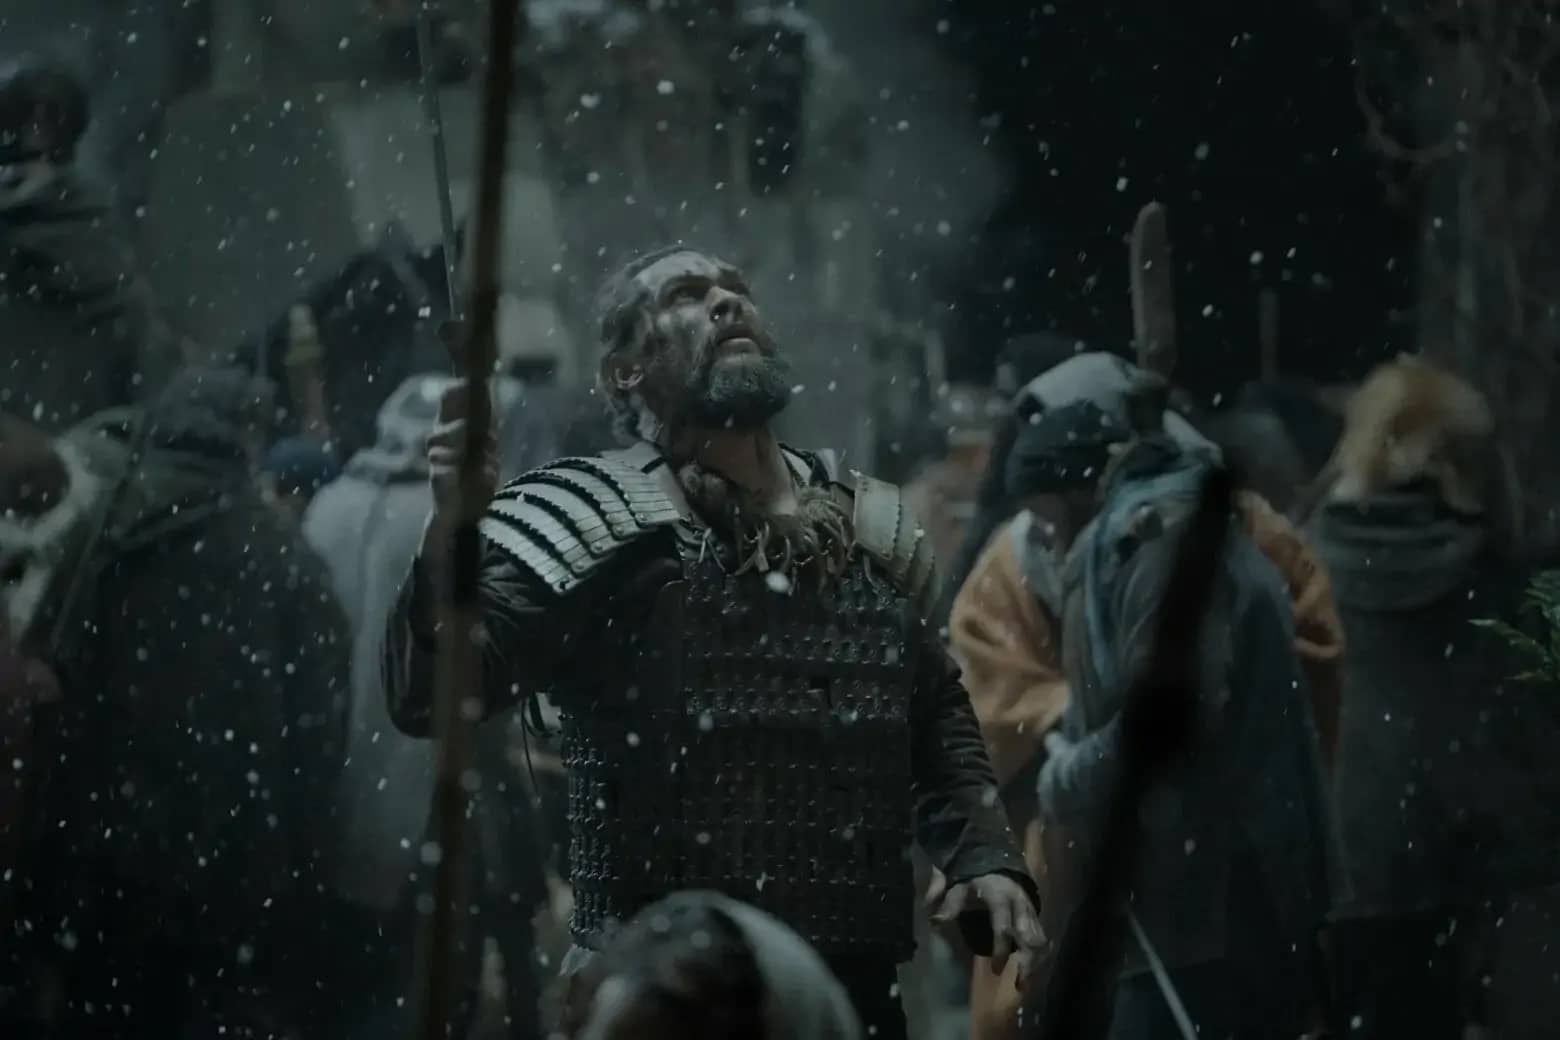 See season 2 episode 1 2 3 review disappointment, feels like a lazy Game of Thrones rip-off Jason Momoa Dave Bautista Baba